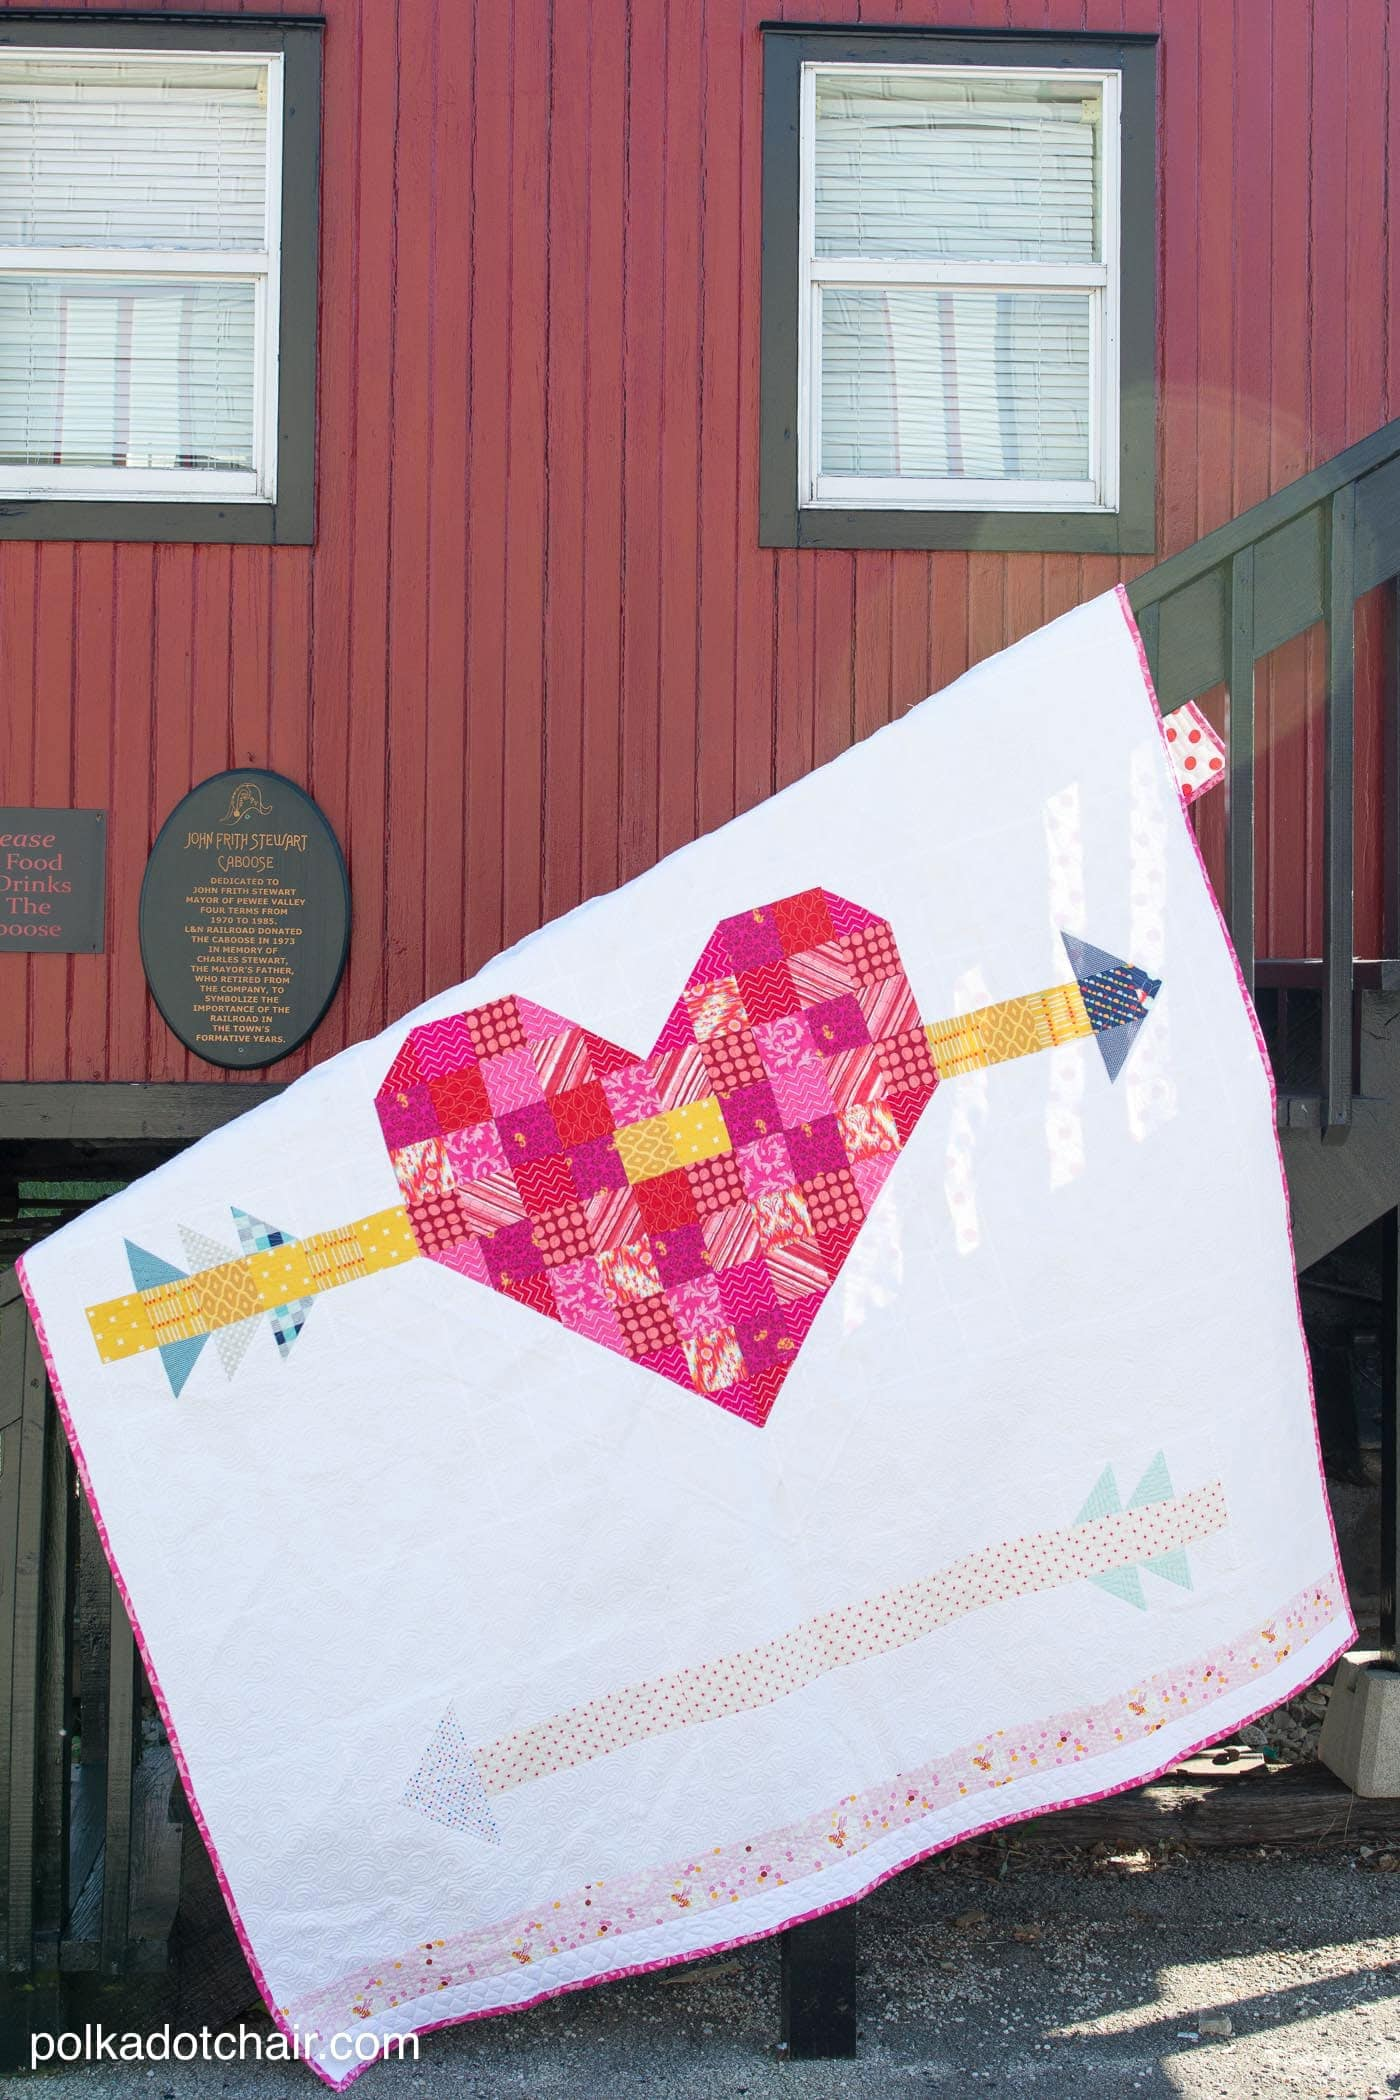 Cupid's Arrow Quilt Pattern, a patchwork heart and arrow quilt pattern - great for Valentine's Day sewing